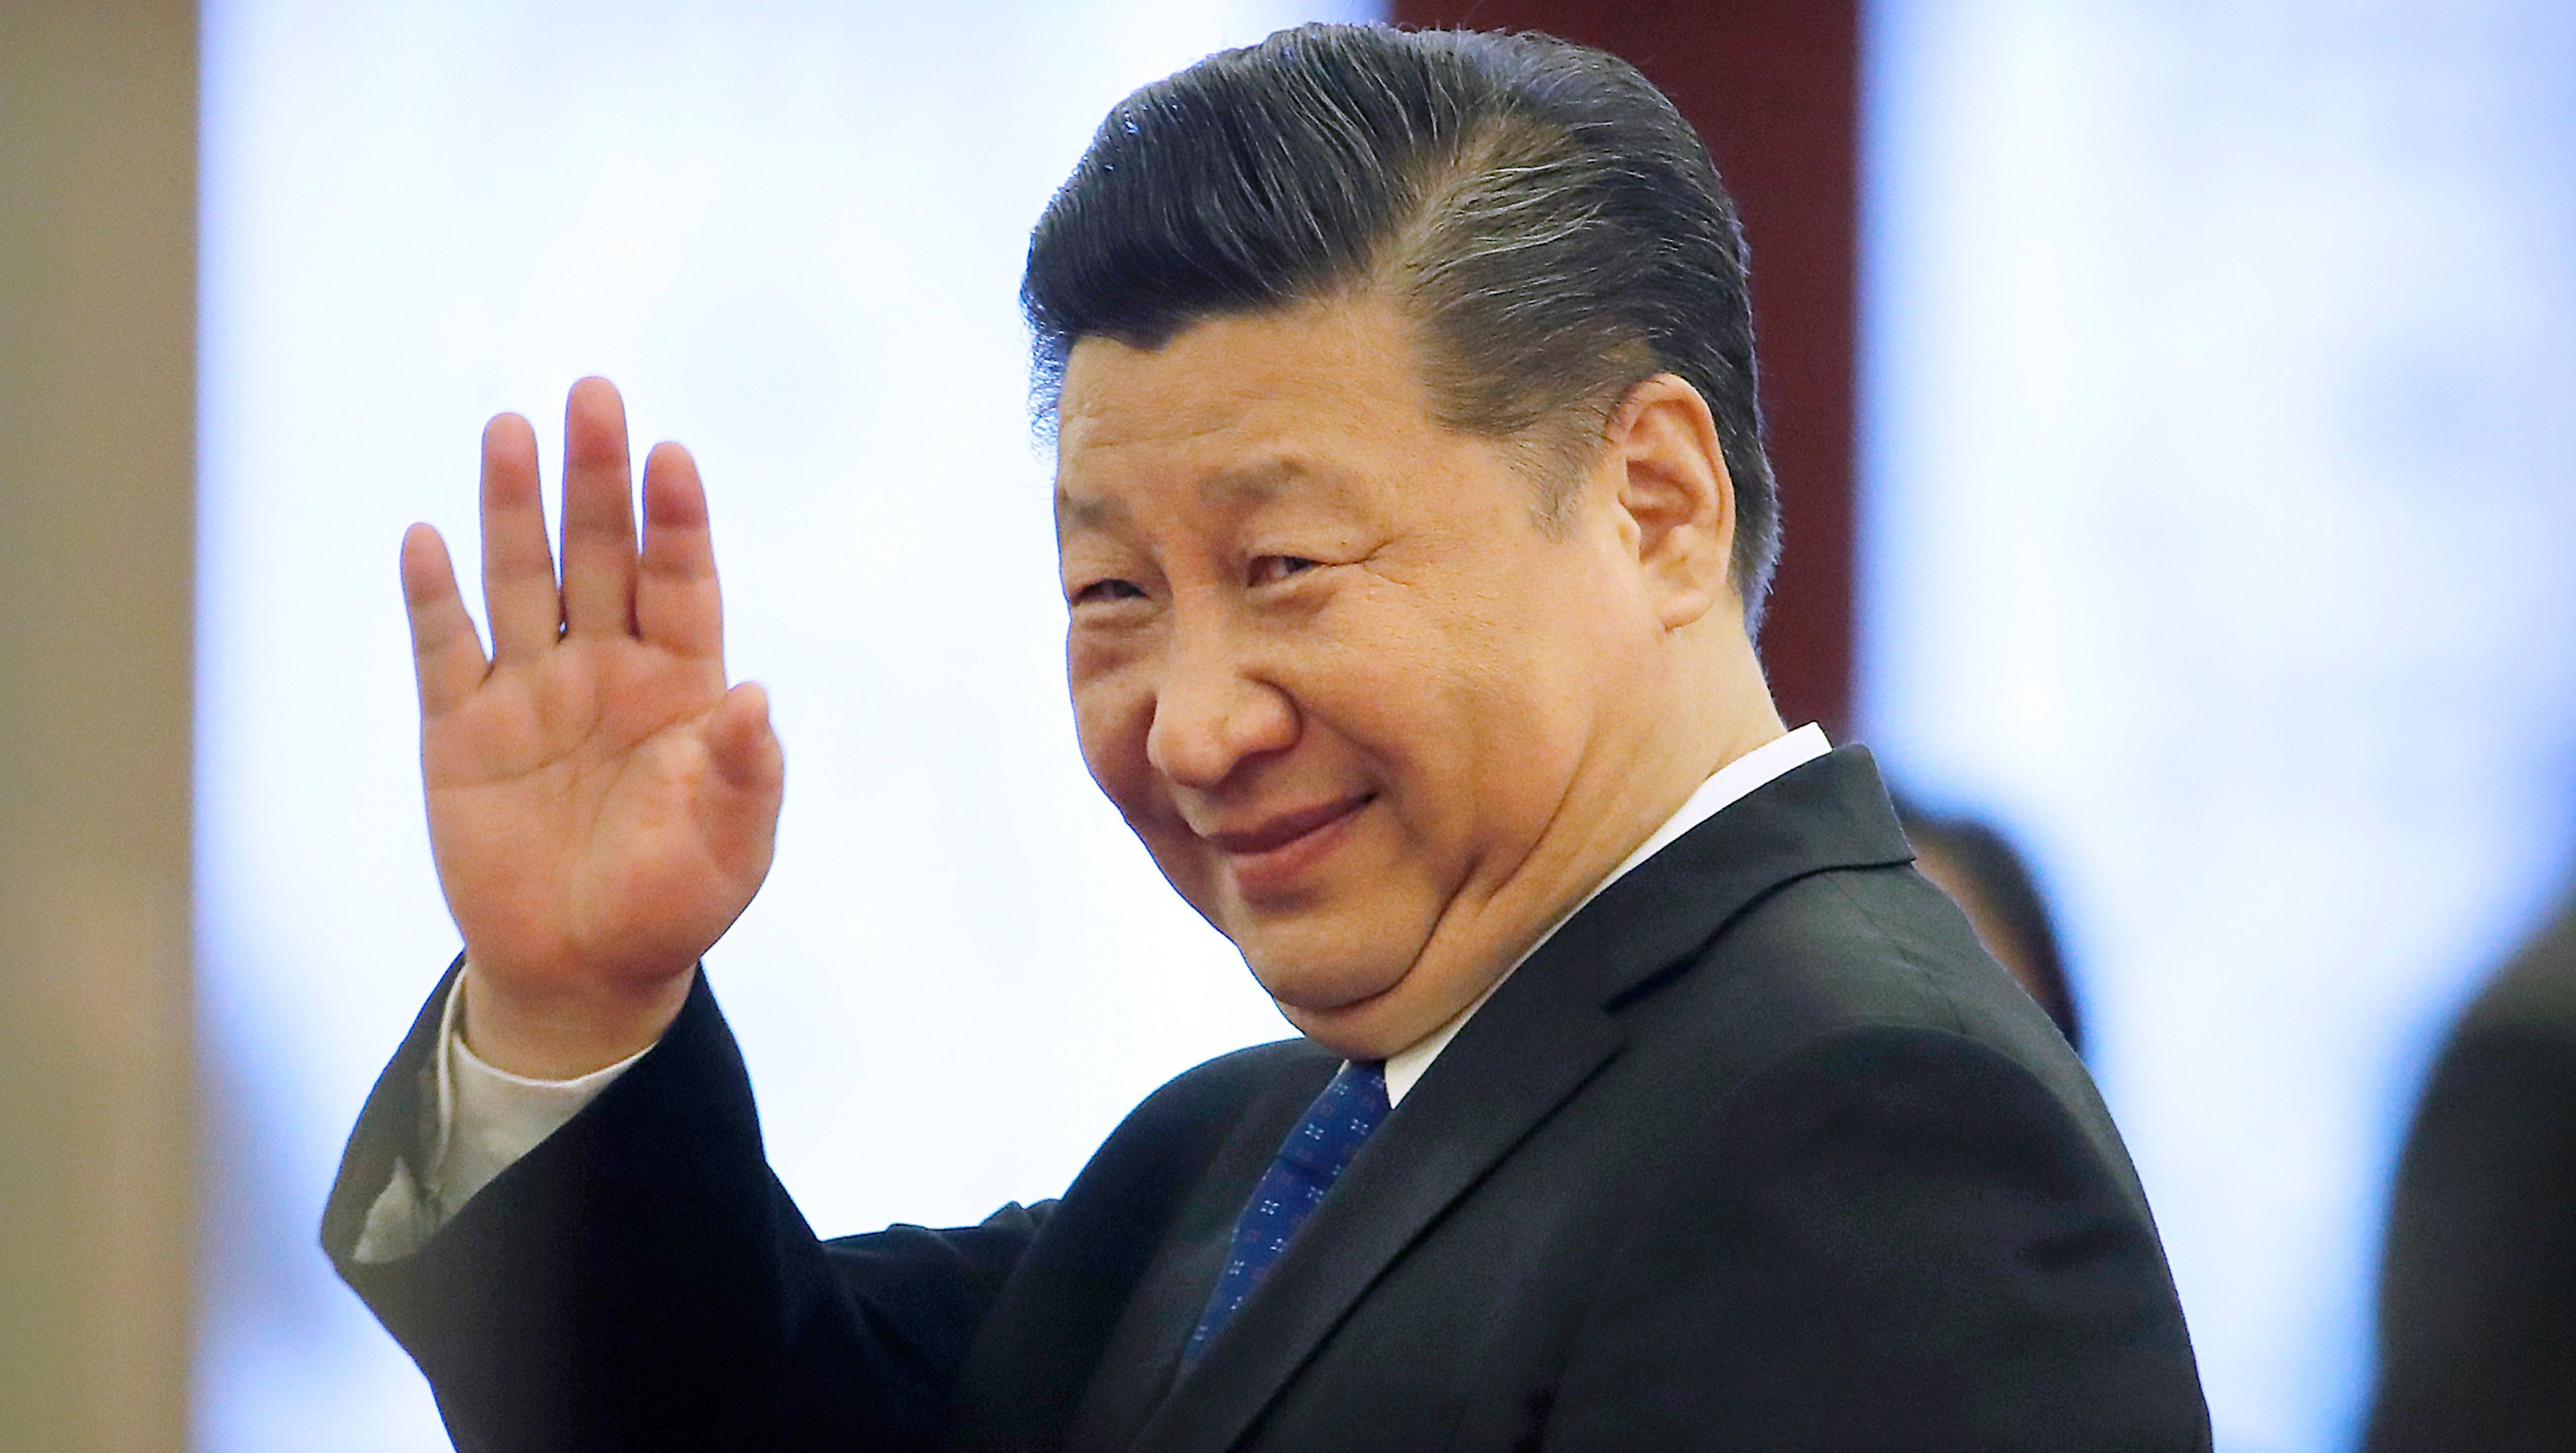 Chinese President Xi Jinping waves as he leaves a welcome ceremony at the Great Hall of the People in Beijing, Thursday, March 29, 2018. (AP Photo/Mark Schiefelbein)